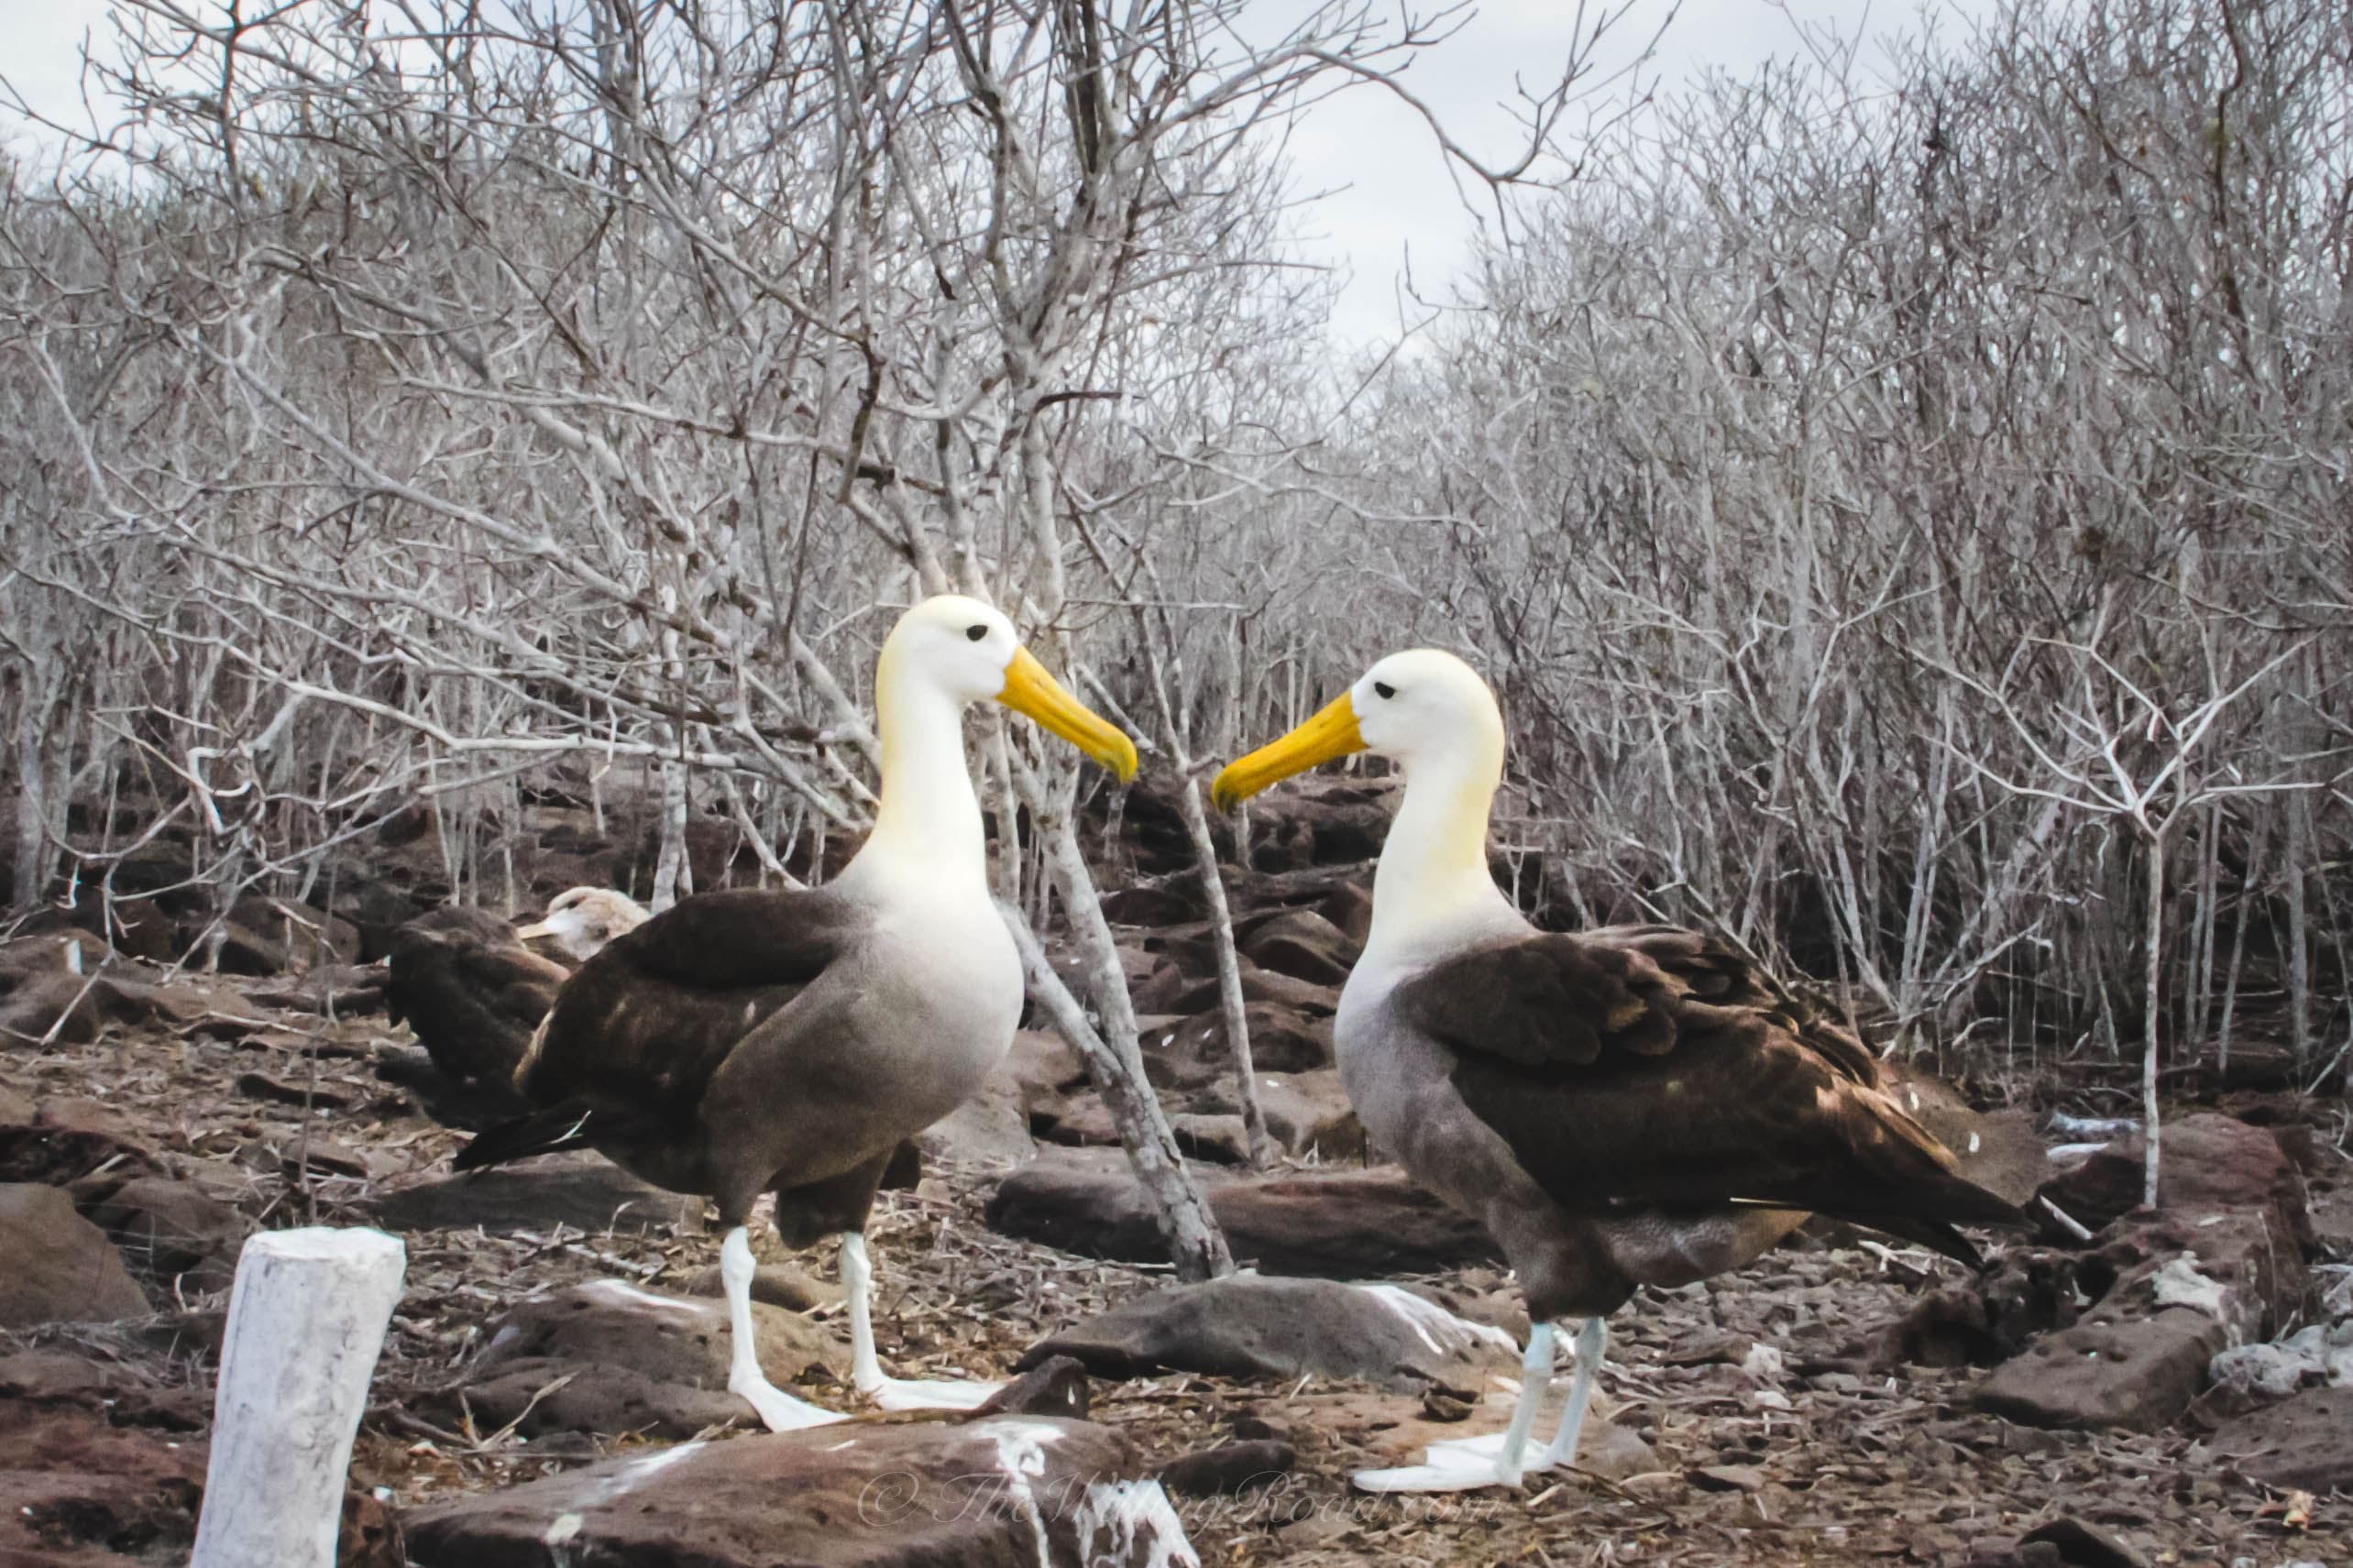 Albatross's dance to acquaint themselves so that when they return home they can identify each other.